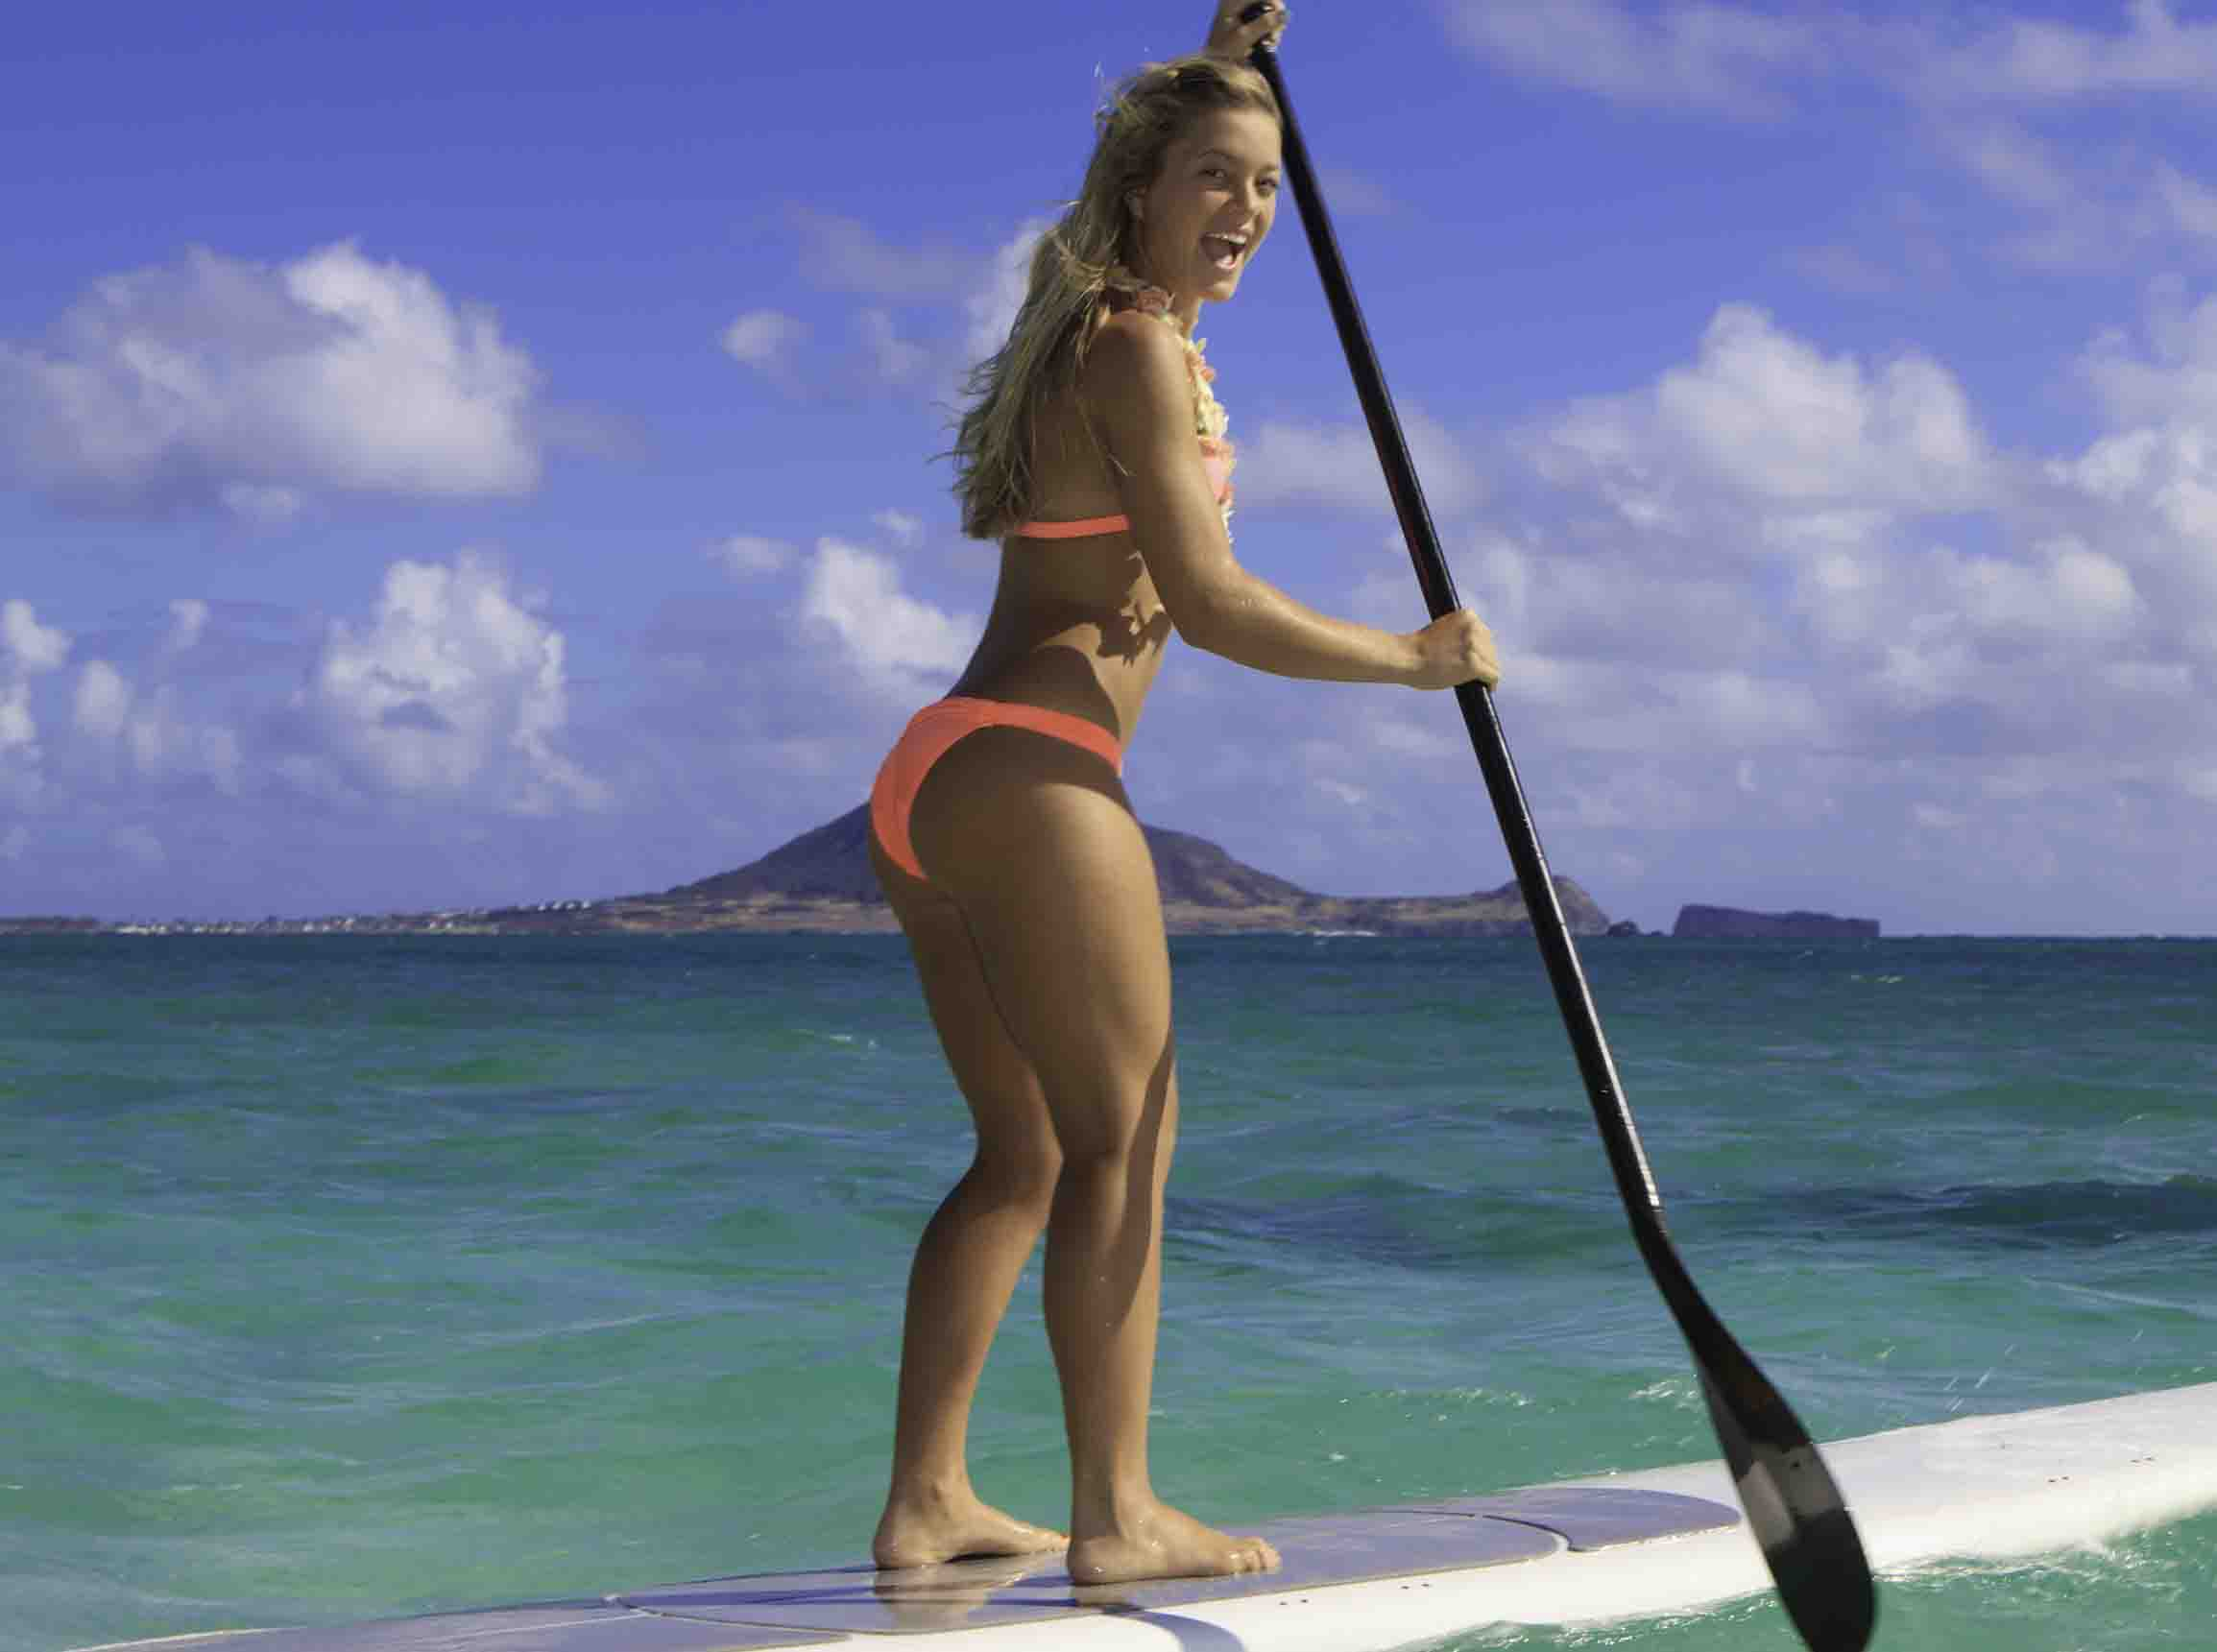 http://www.dreamstime.com/stock-images-girl-bikini-her-paddle-board-image25724614